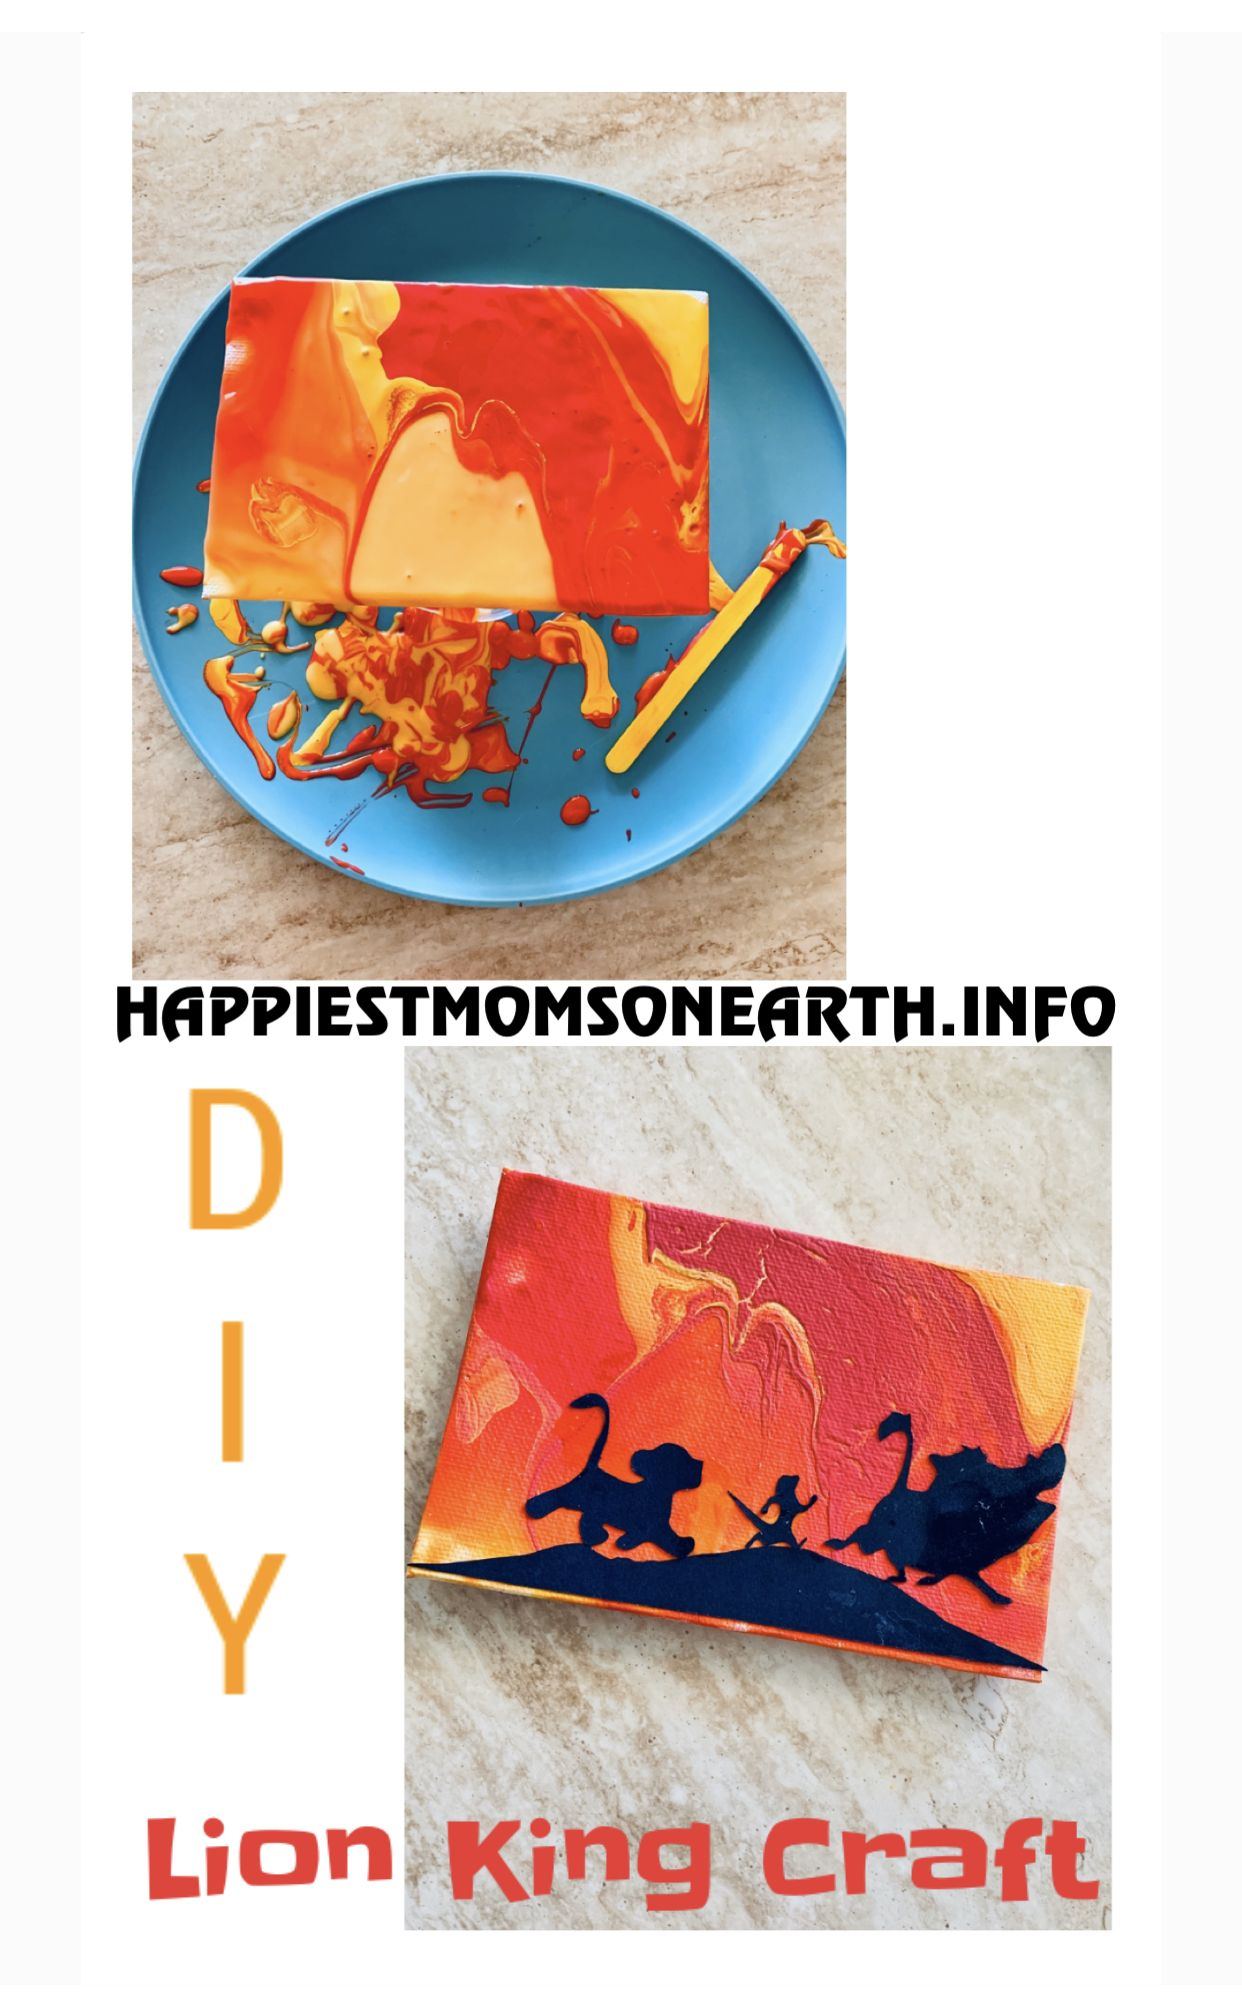 Diy Lion King Craft In 2020 Disney Crafts Lion King Crafts Disney Diy Crafts